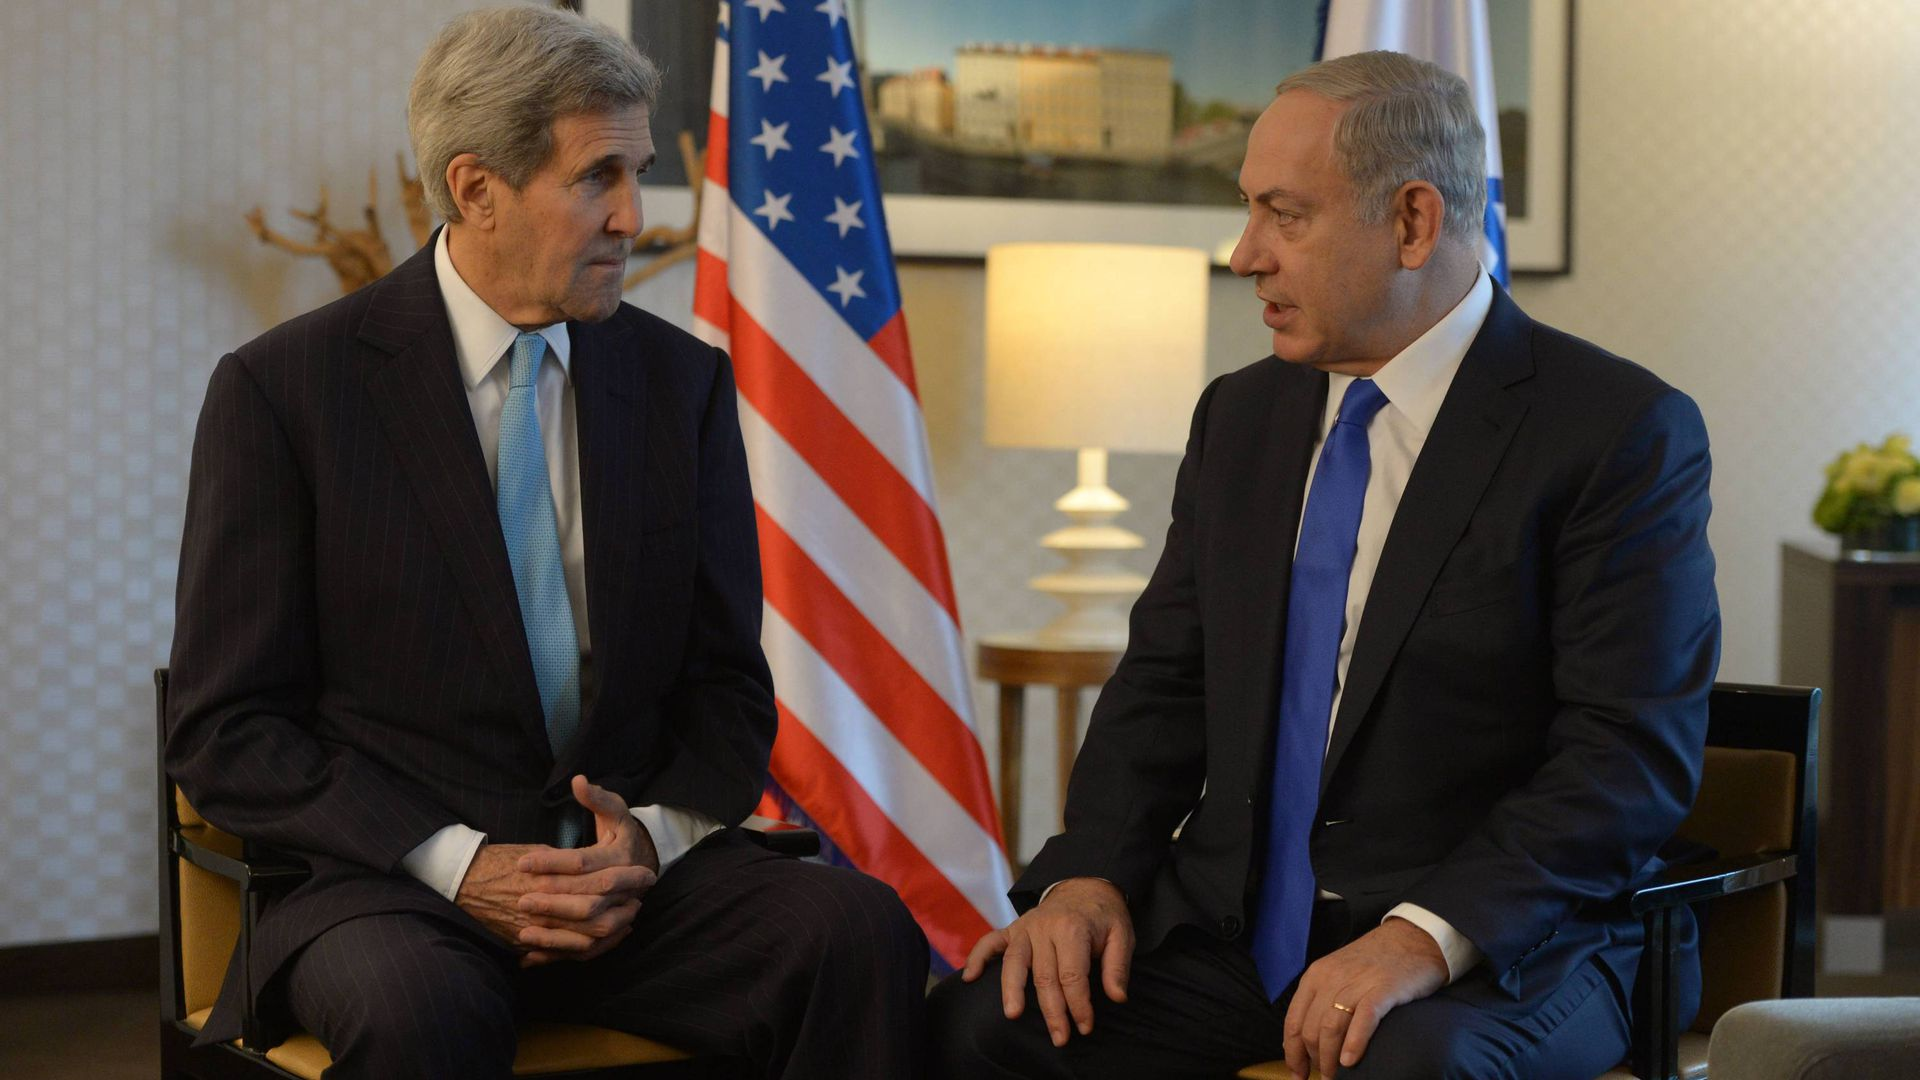 How John Kerry got tied up in Netanyahu's indictments